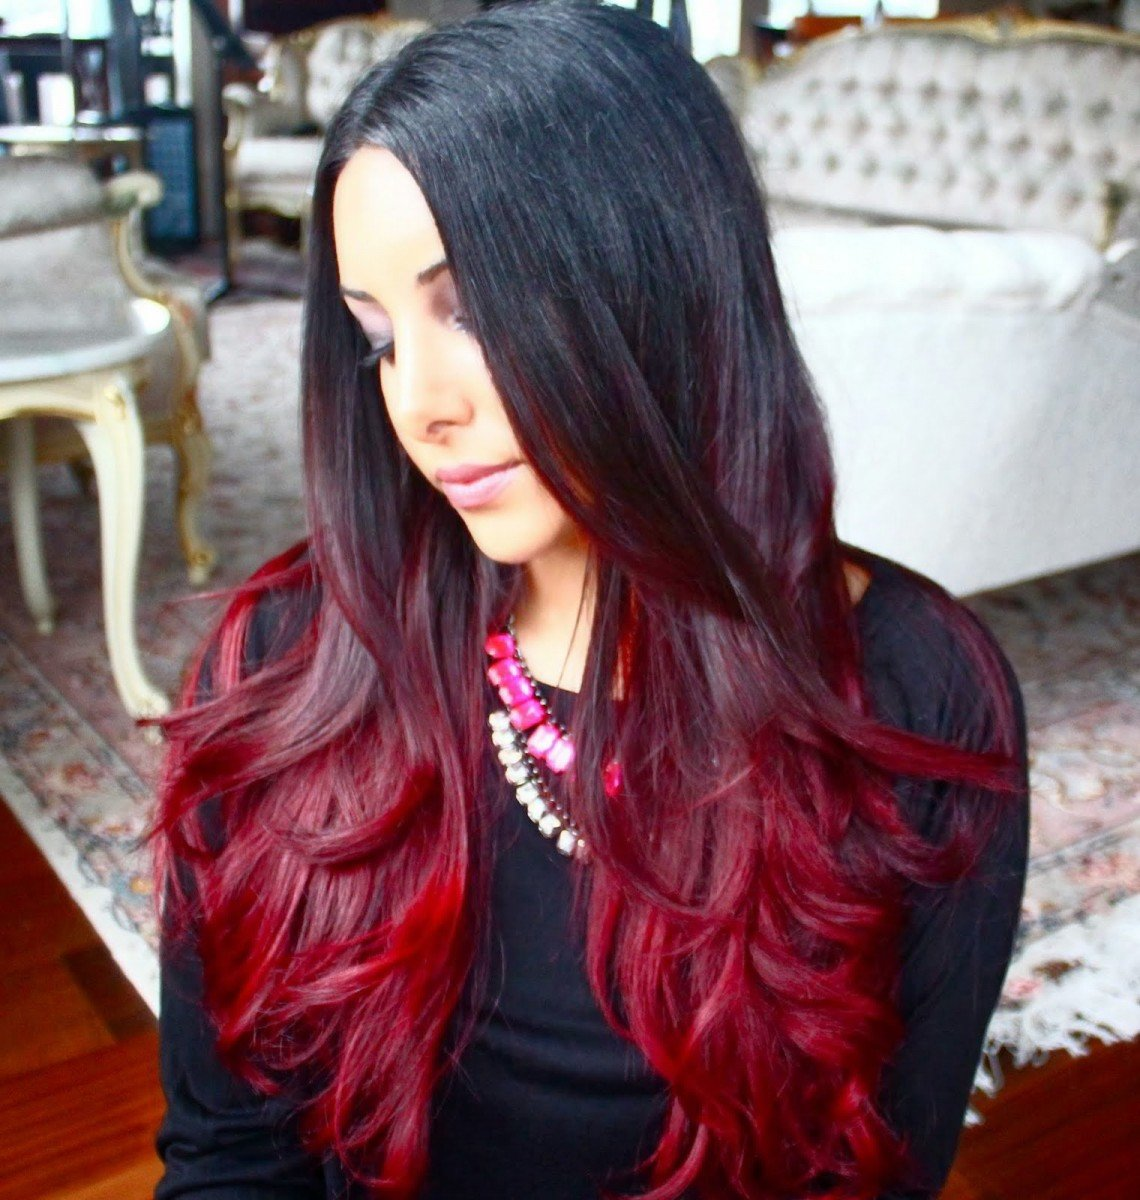 How to Make Natural Fashion hair red dyed